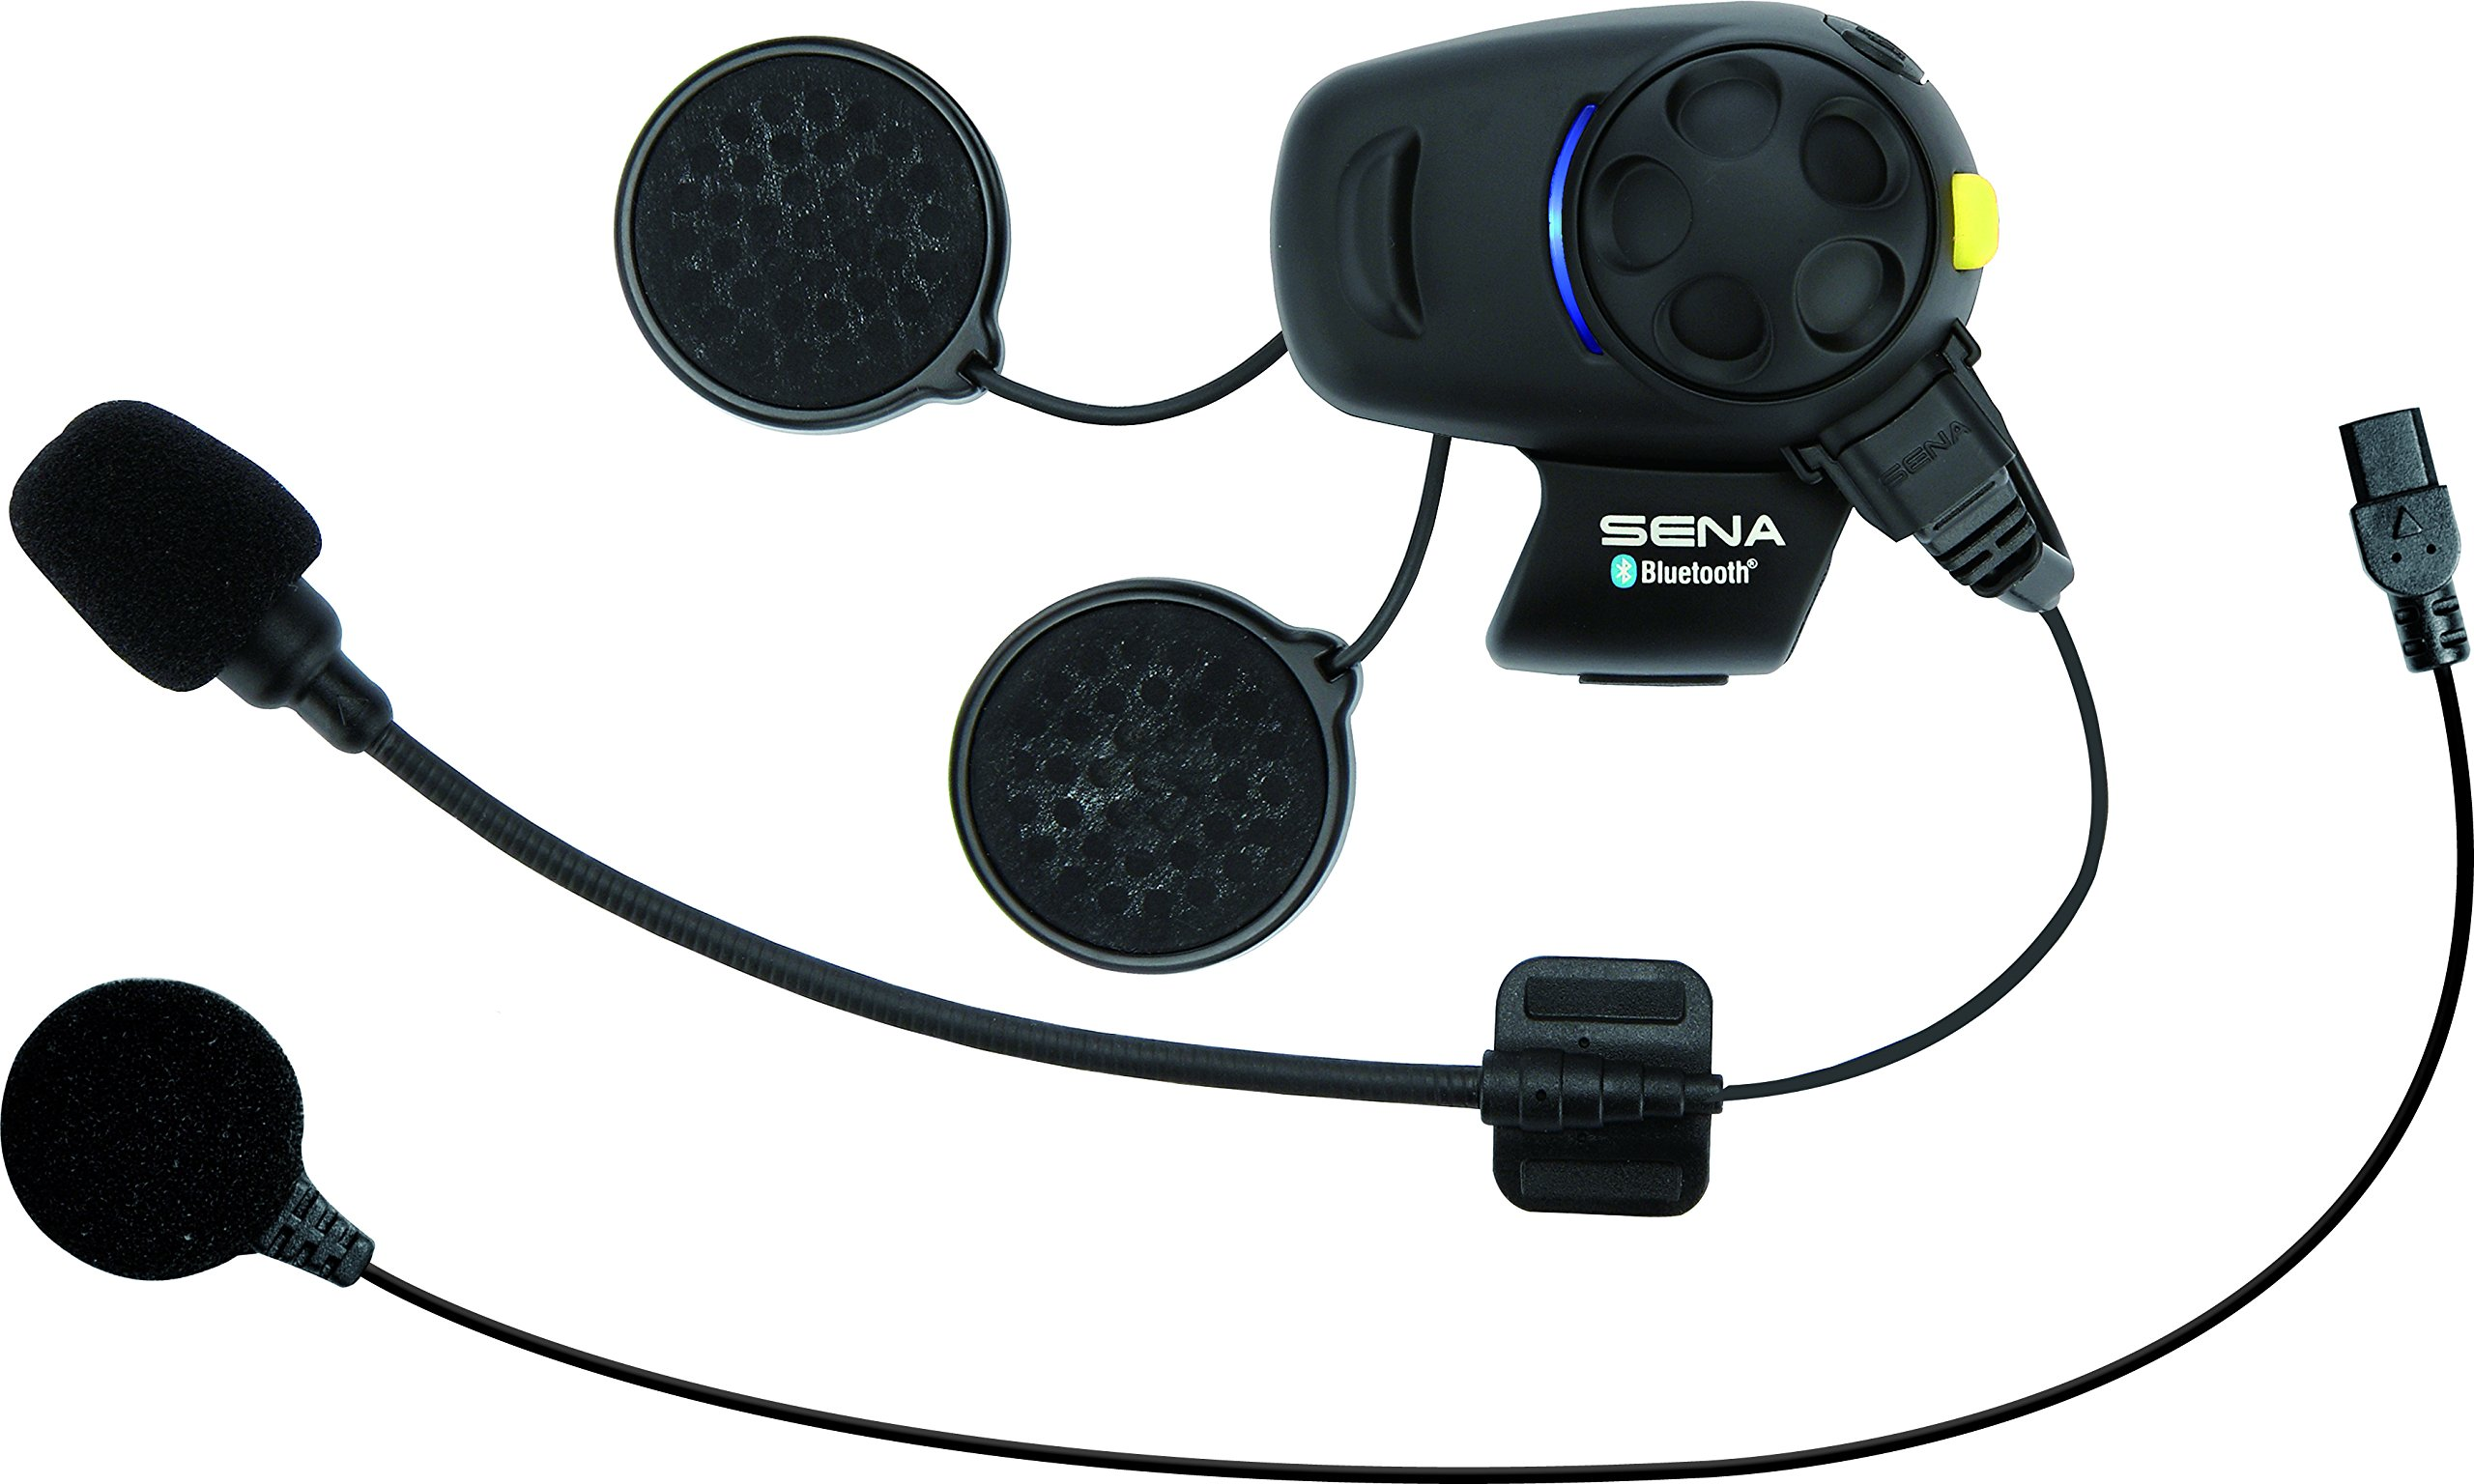 Sena  SMH5-FM-UNIV Bluetooth Headset and Intercom with Built-In FM Tuner for Scooters/Motorcycles with Universal Microphone Kit by Sena